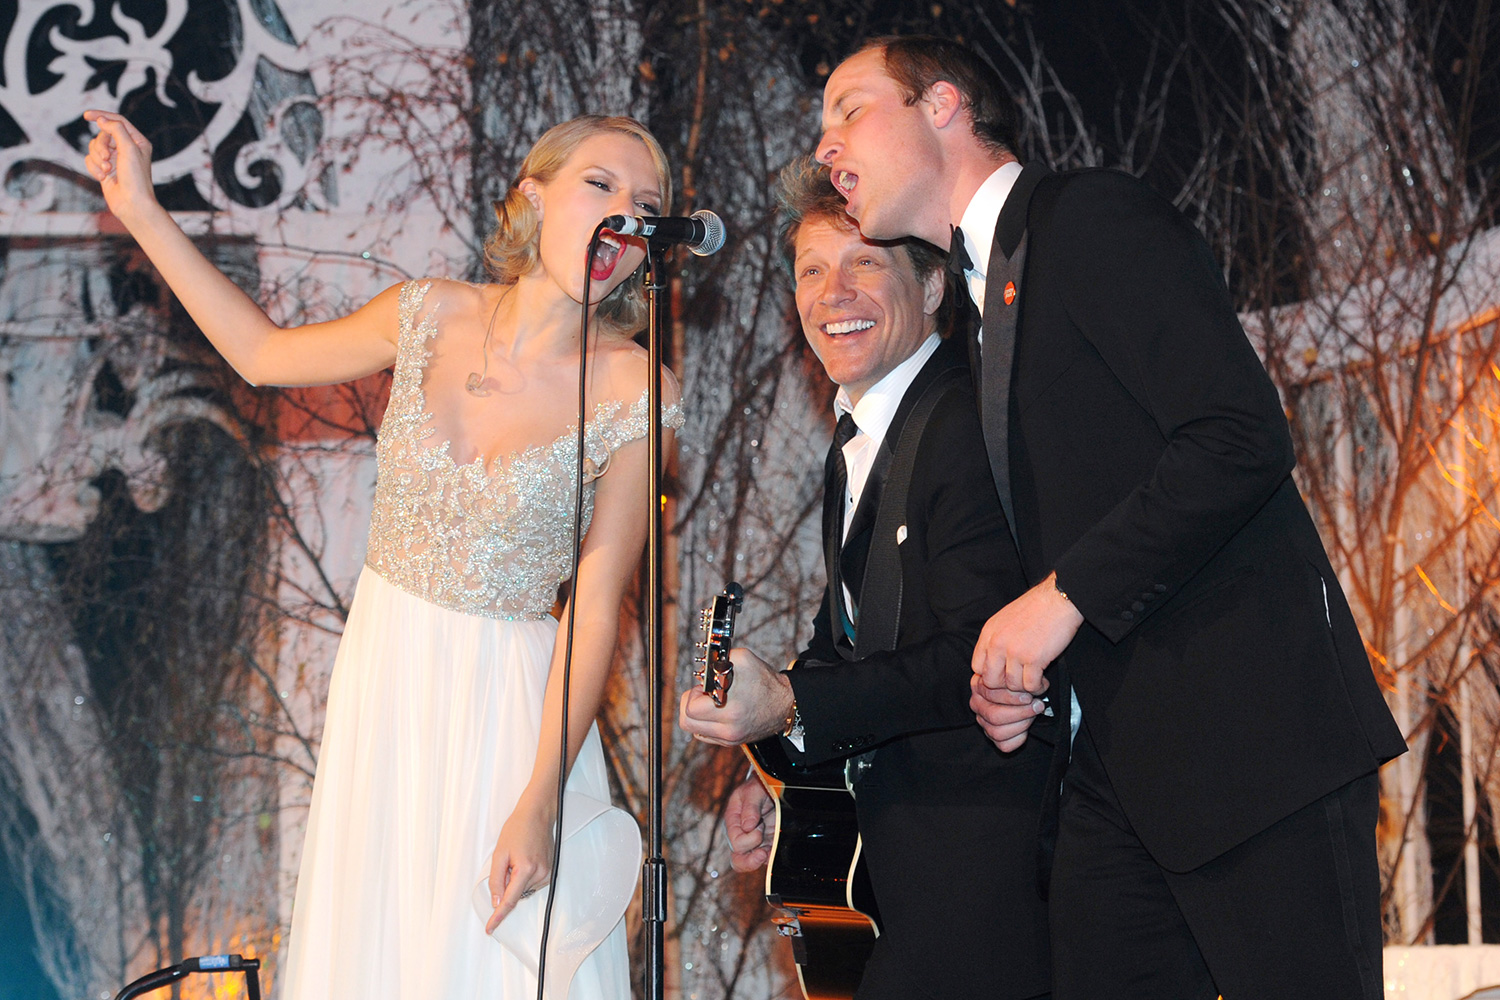 Taylor Swift, Jon Bon Jovi and Prince William, Duke of Cambridge perform during the Winter Whites Gala In Aid Of Centrepoint on November 26, 2013 in London, England